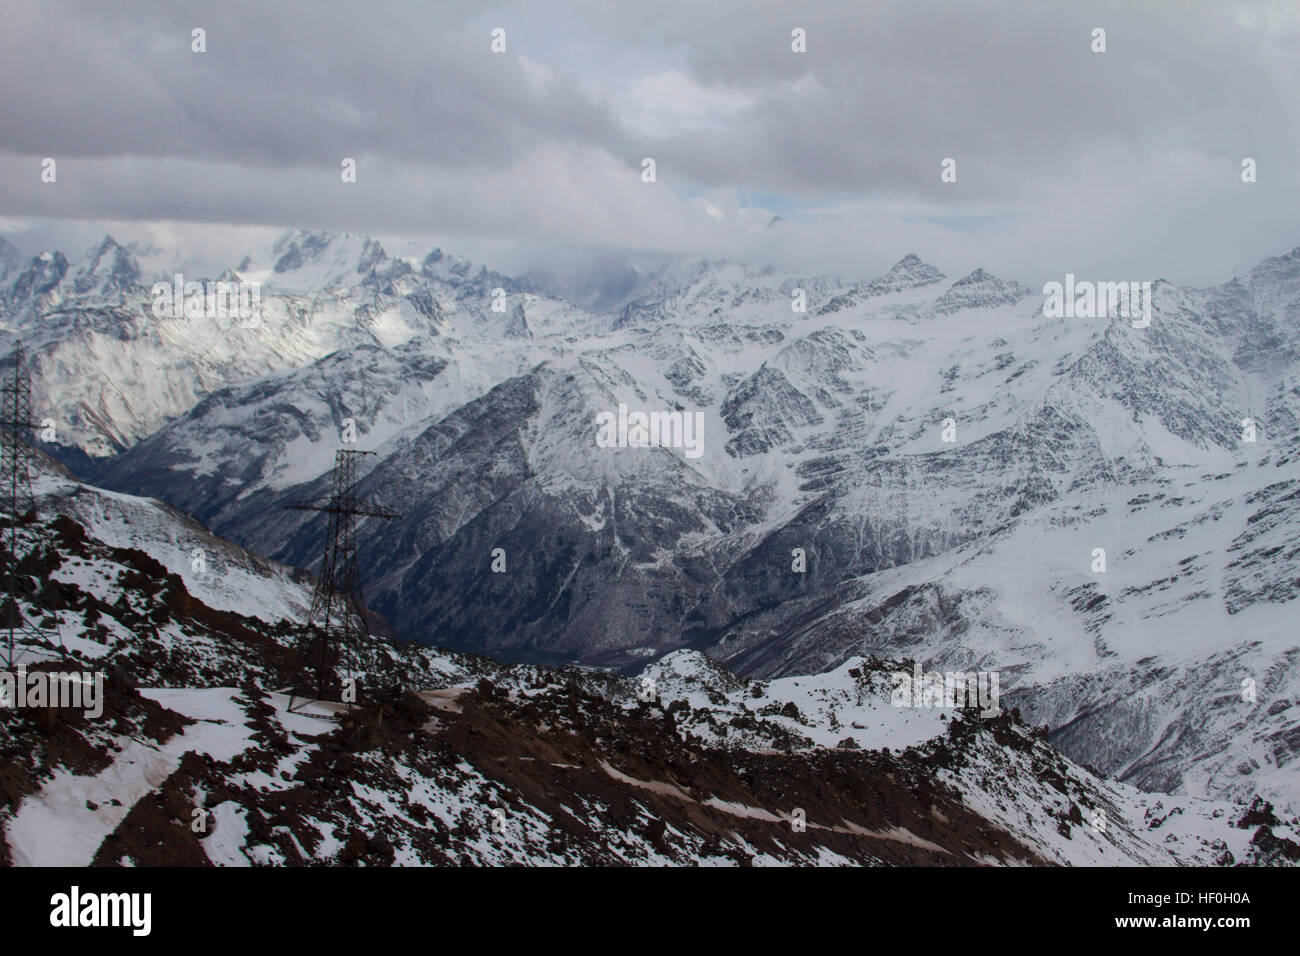 Nov 3, 2016 - The Kabardino-Balkar Republic, Russia - Mount Elbrus ...